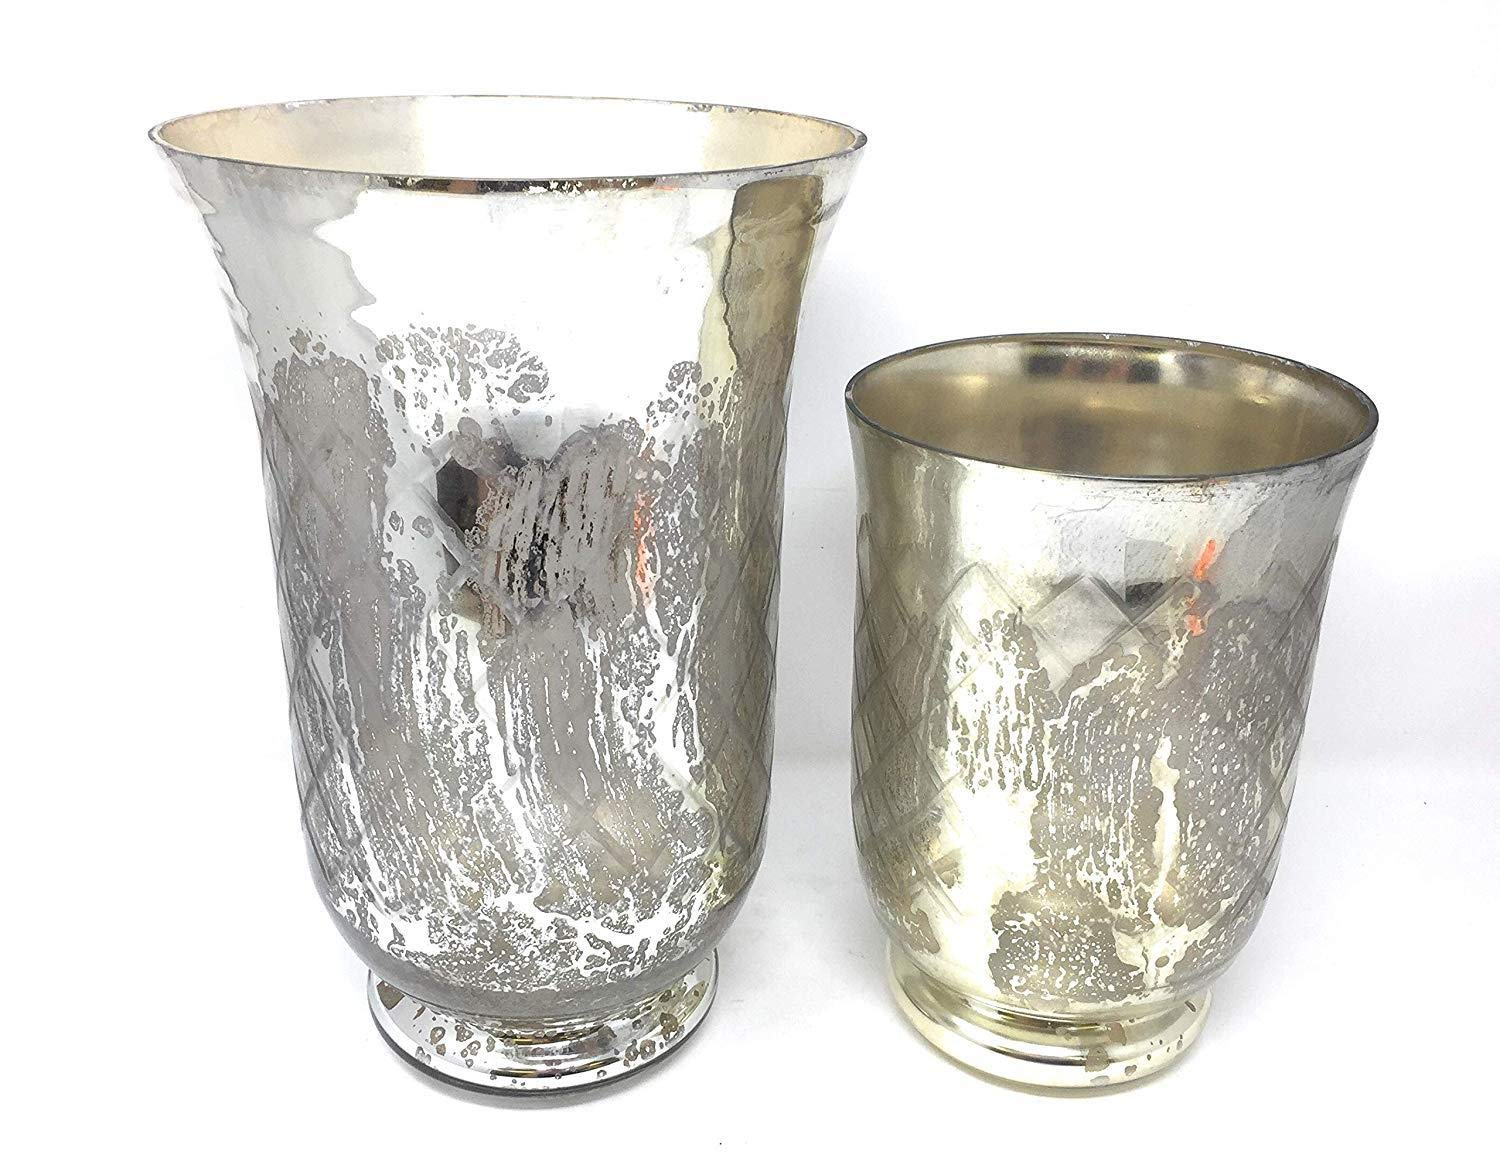 Serene Spaces Living Antique Silver Etched Hurricane Handmade Vintage-Inspired Mercury Glass Vase, Set of Small and Large by Serene Spaces Living